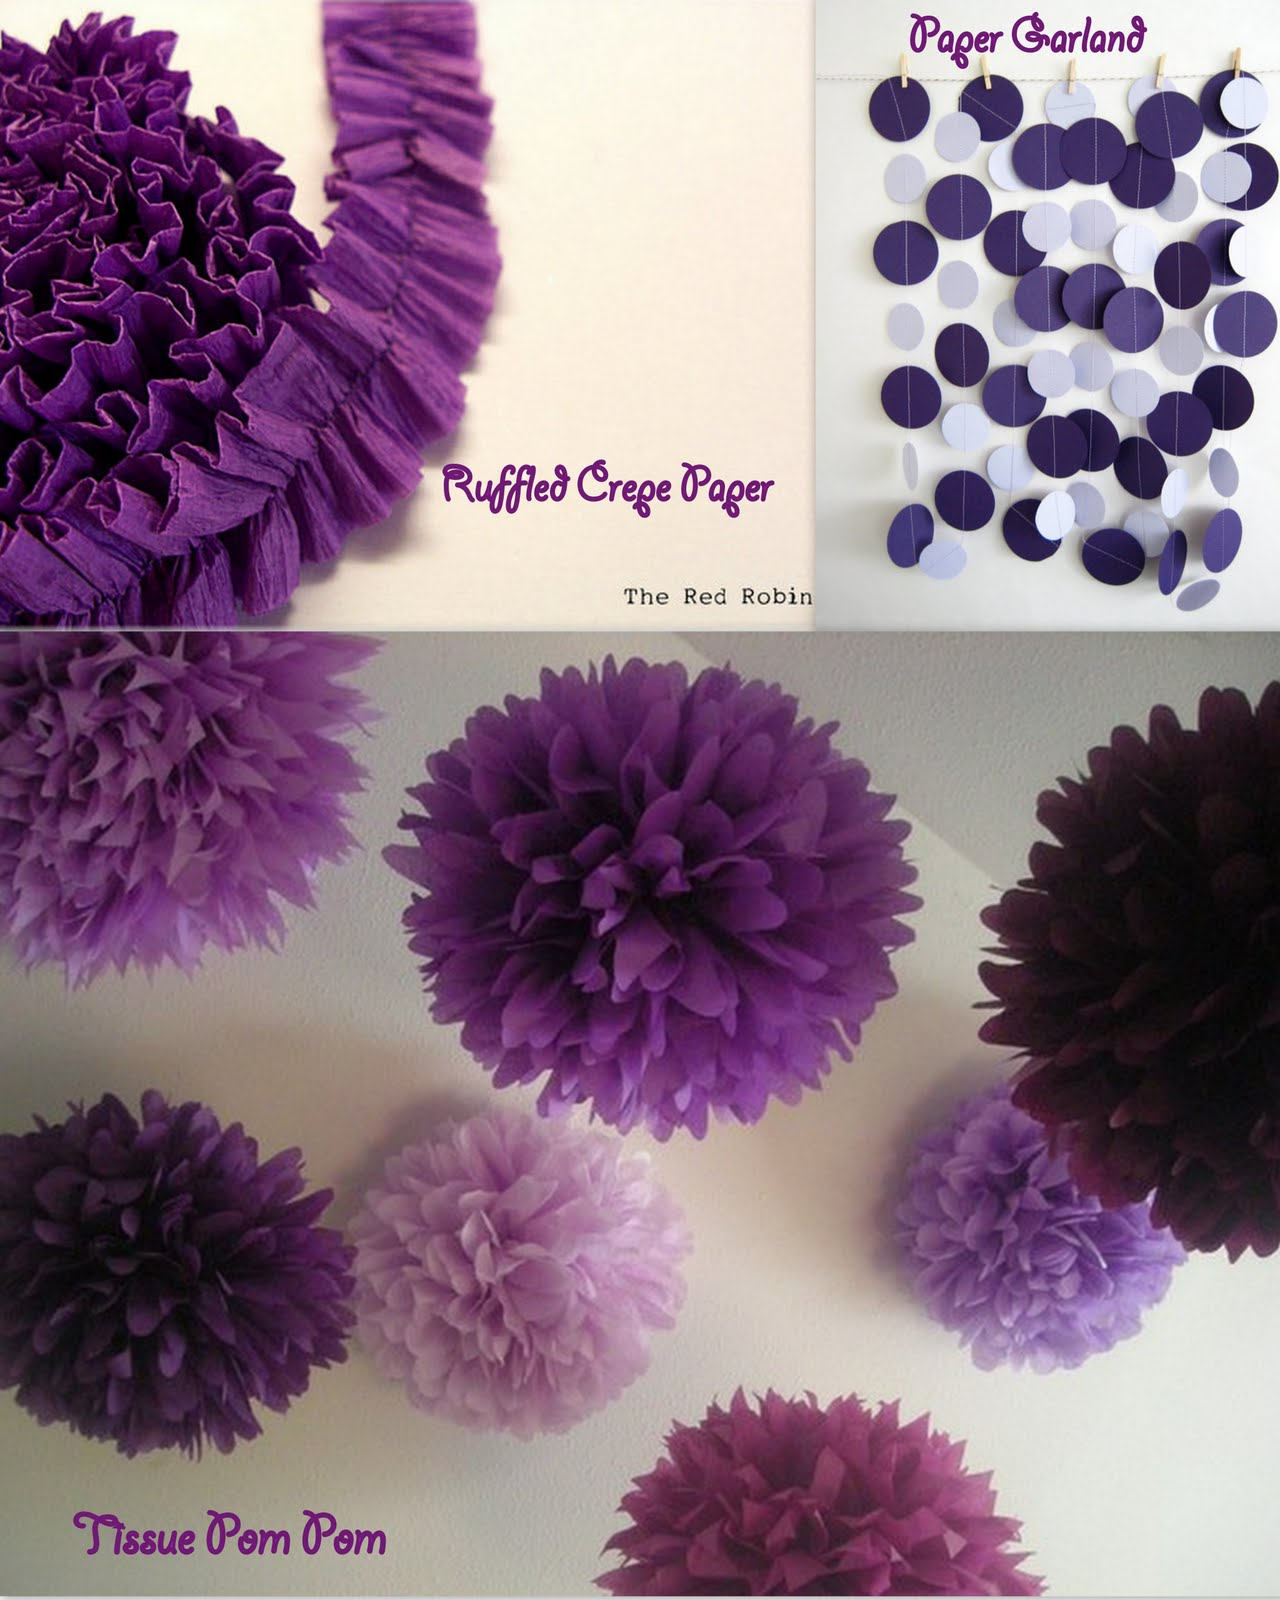 Ruffled Crepe paper from TheRedRobin .